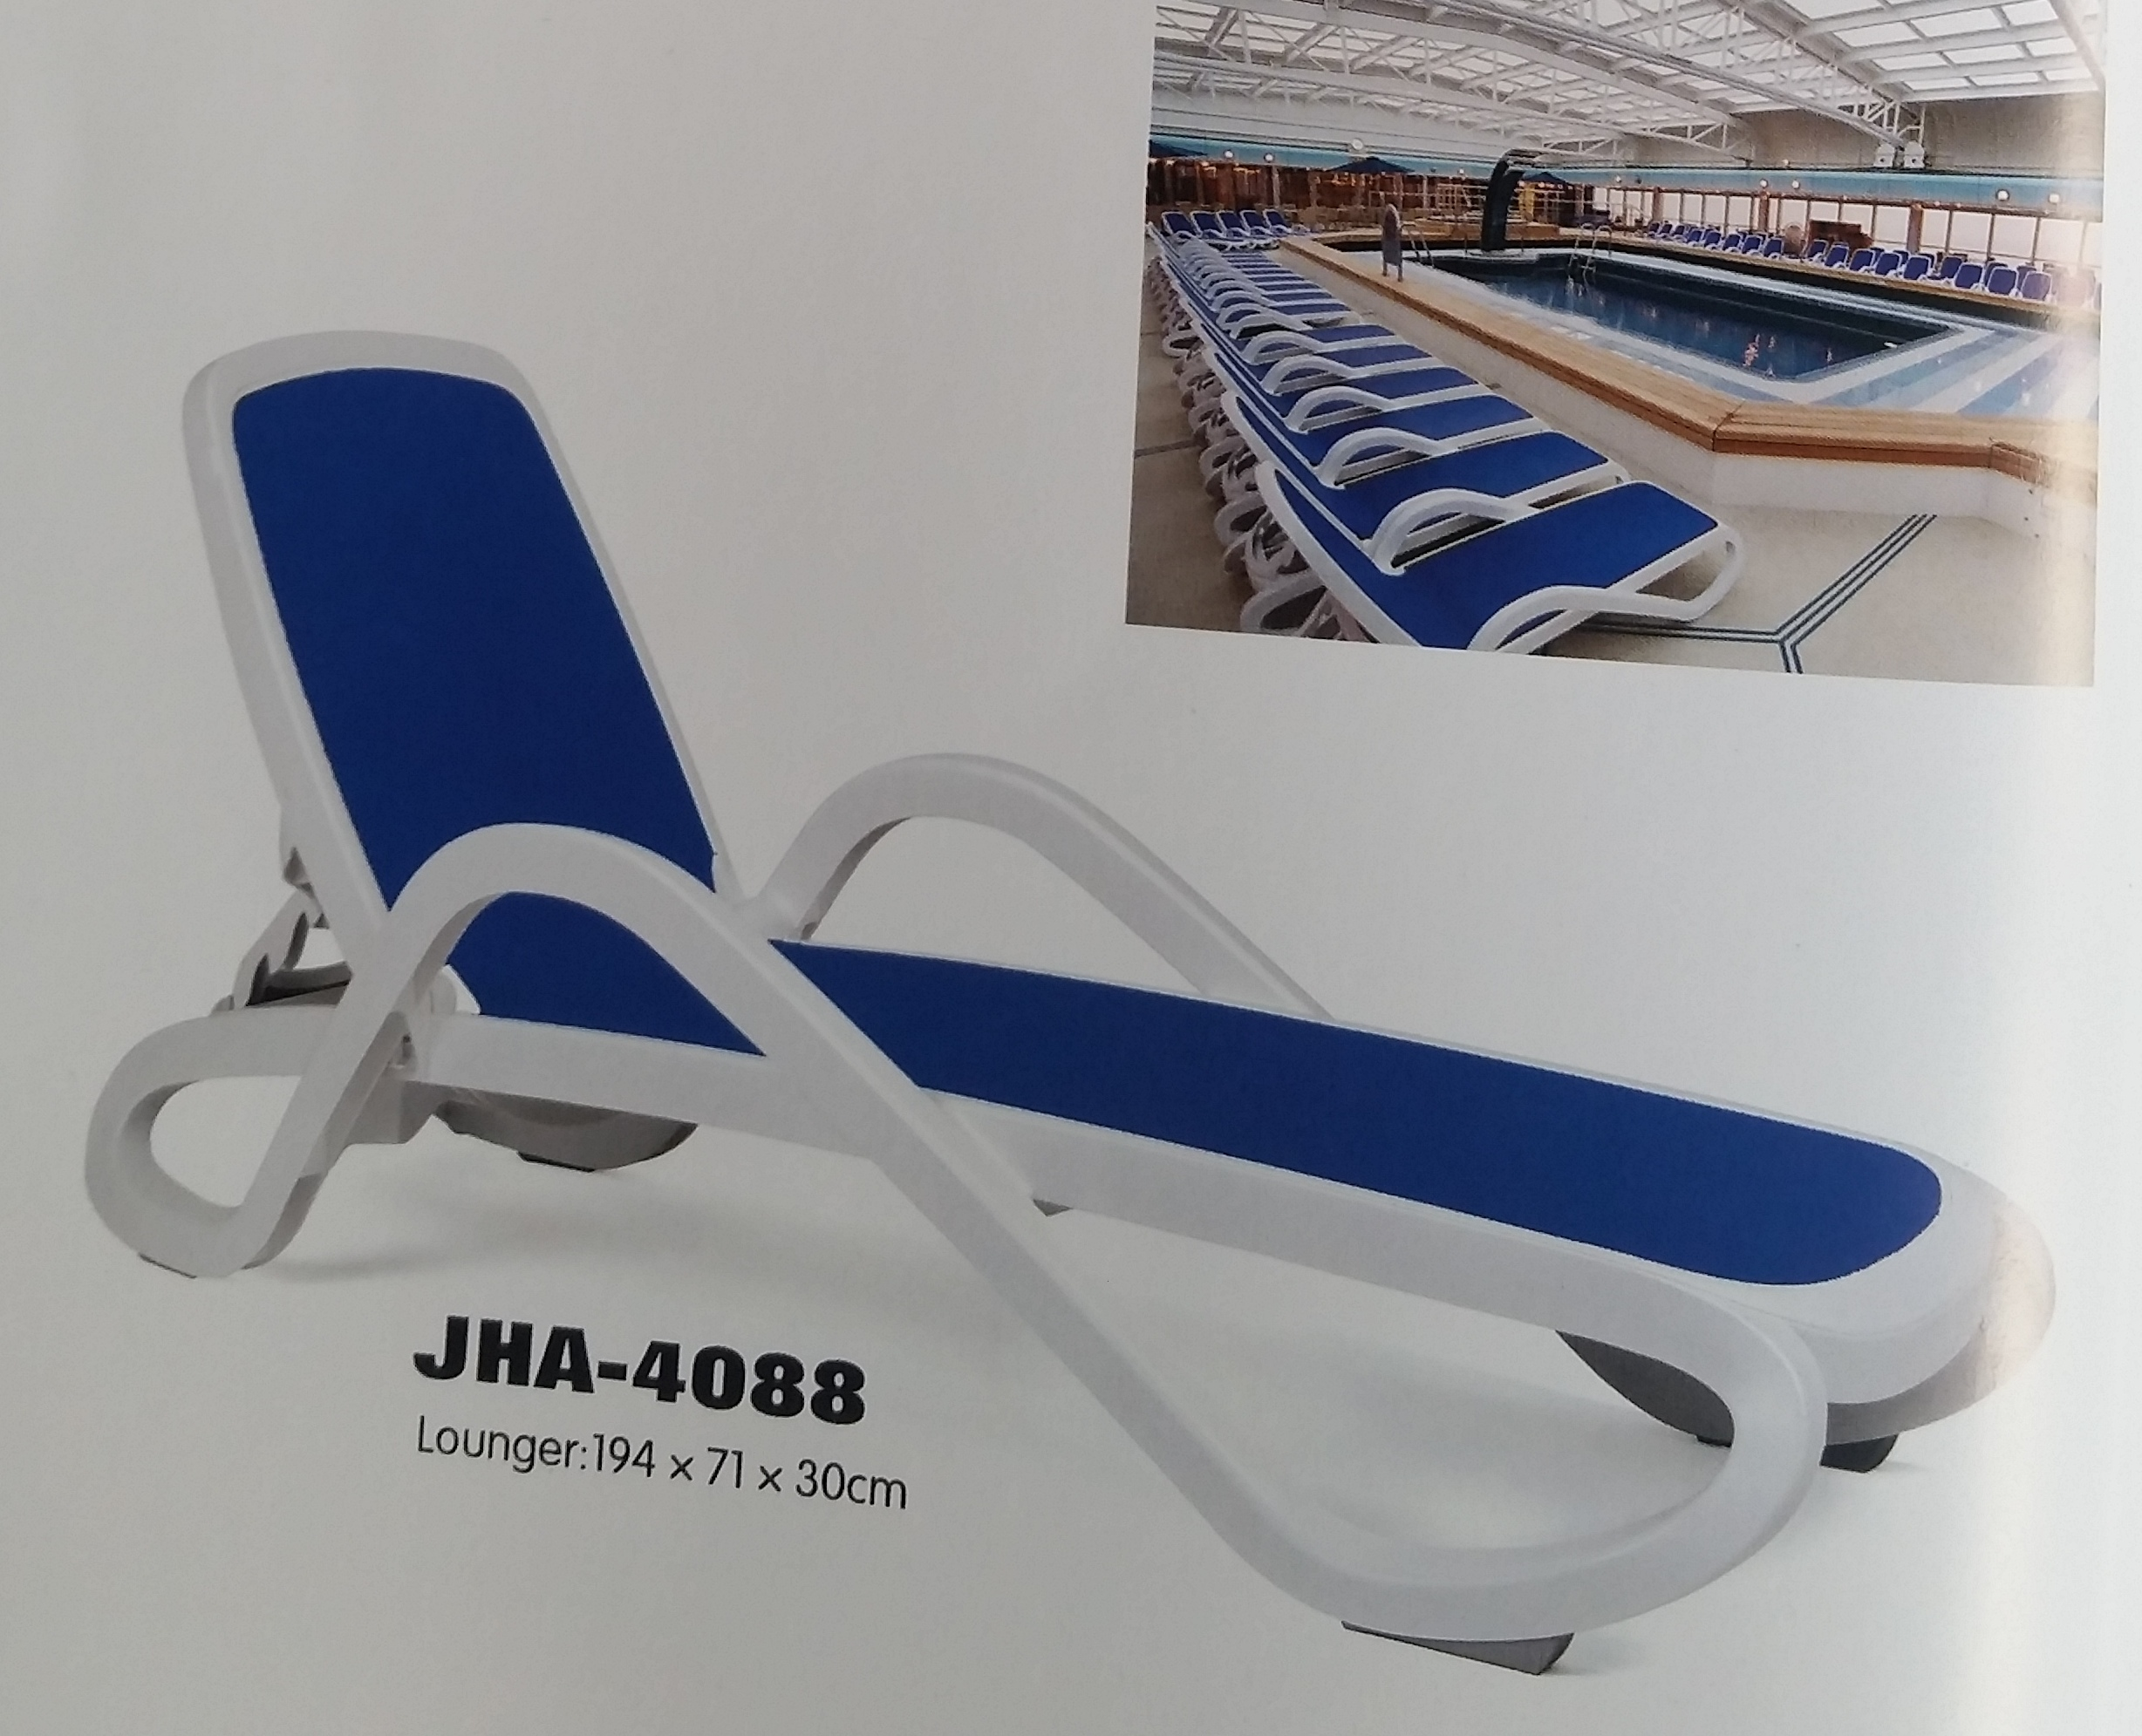 Victron Pool Lounger